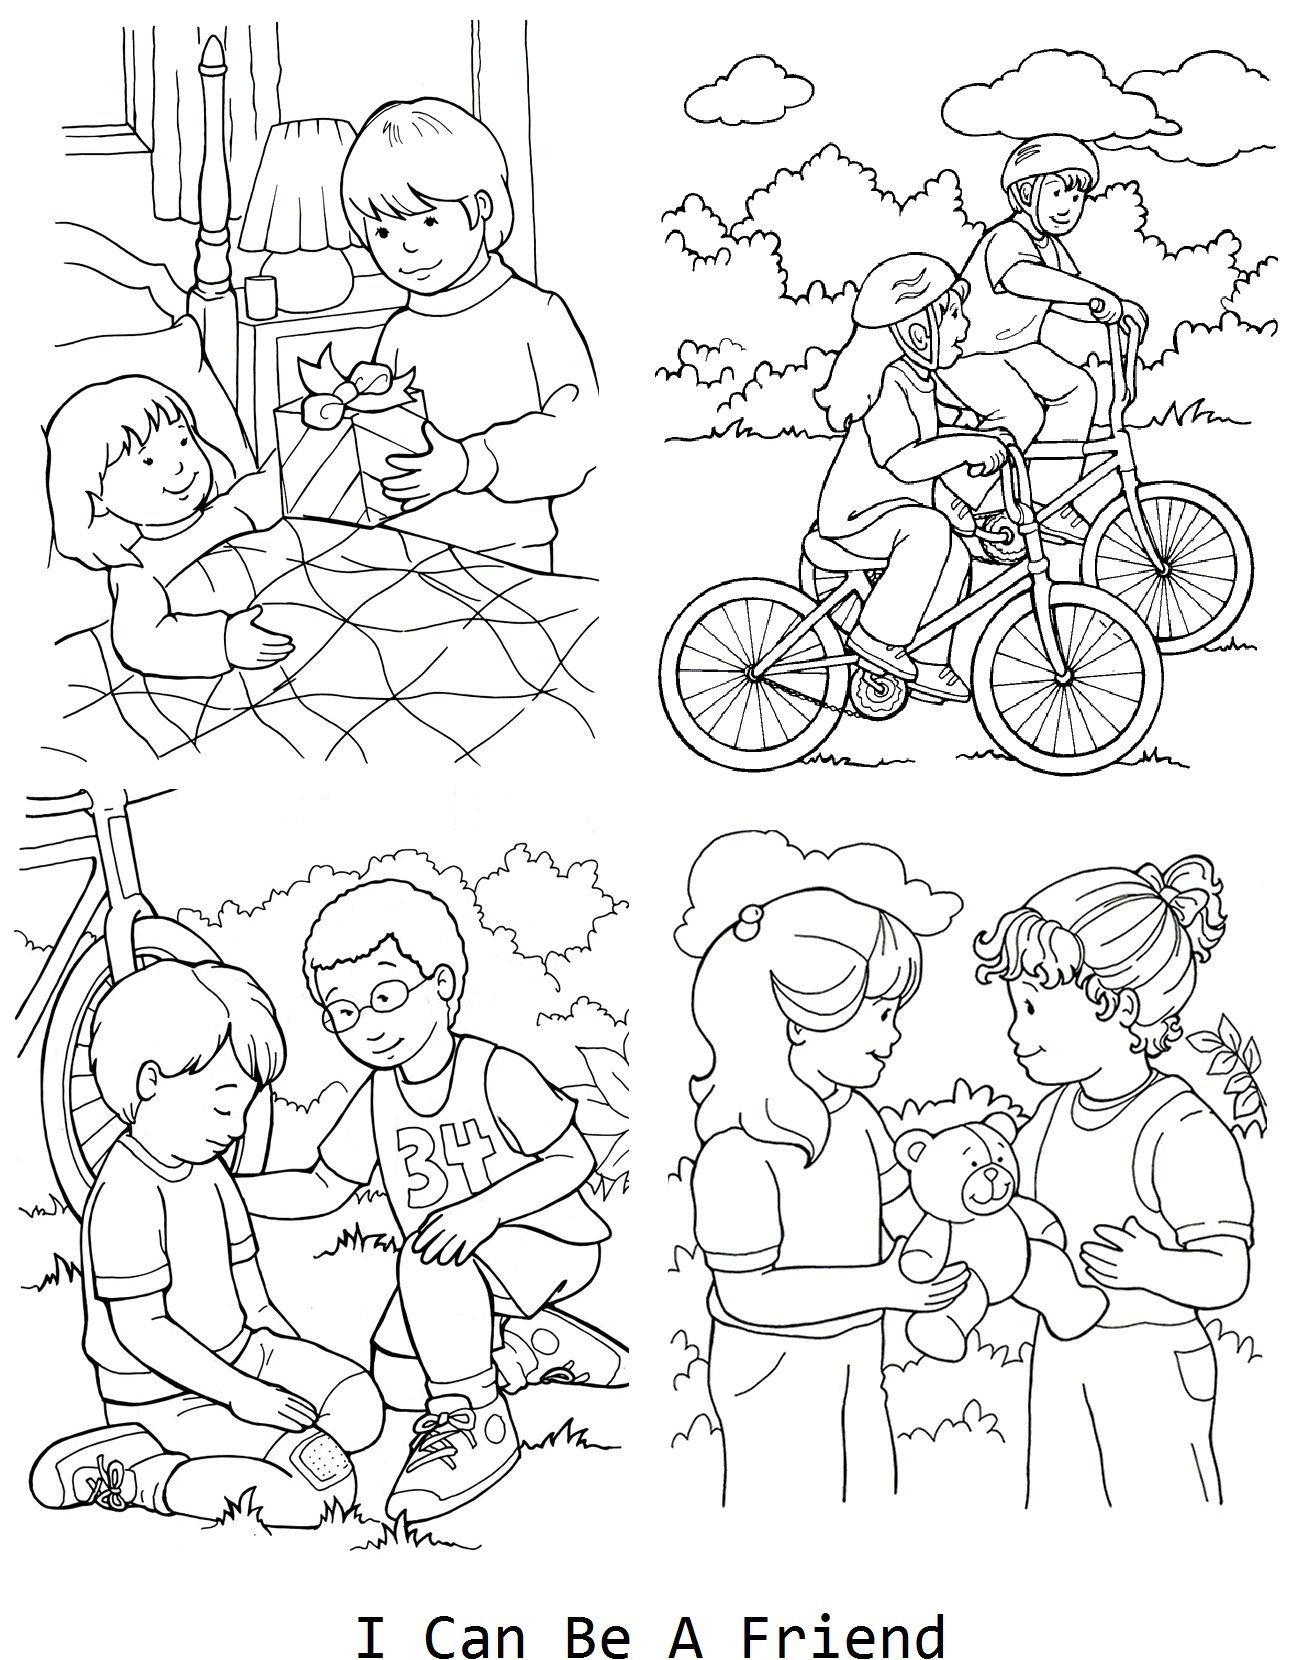 Free Lds Primary Coloring Pages